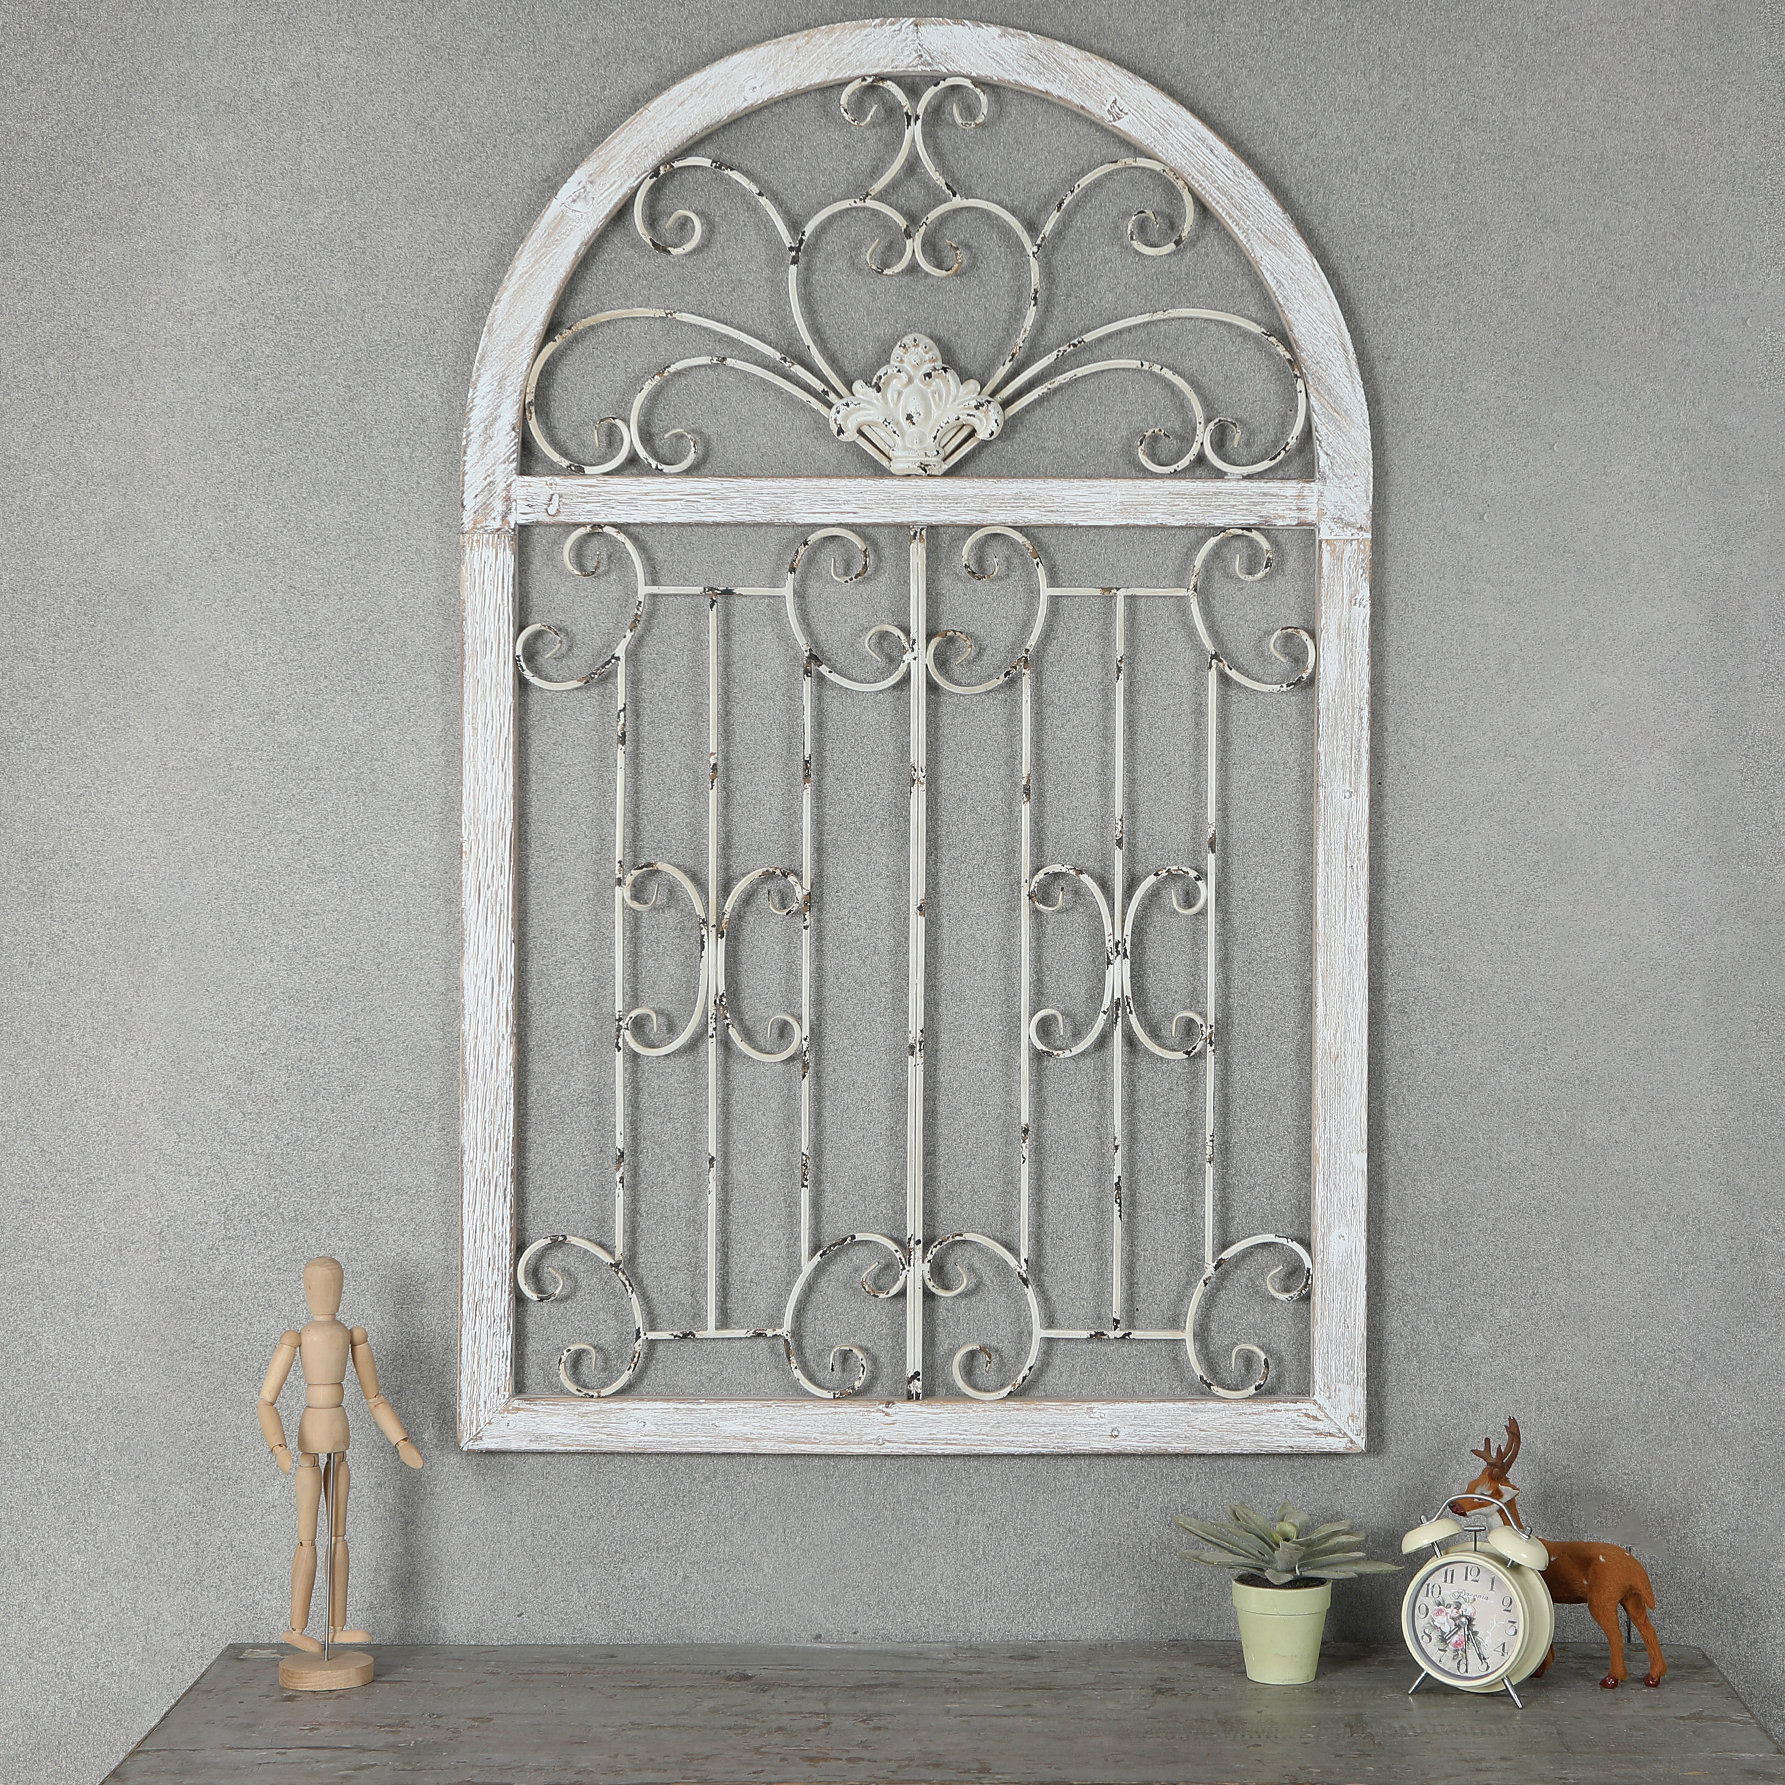 Wayfair Regarding Widely Used Ornate Scroll Wall Decor (View 18 of 20)